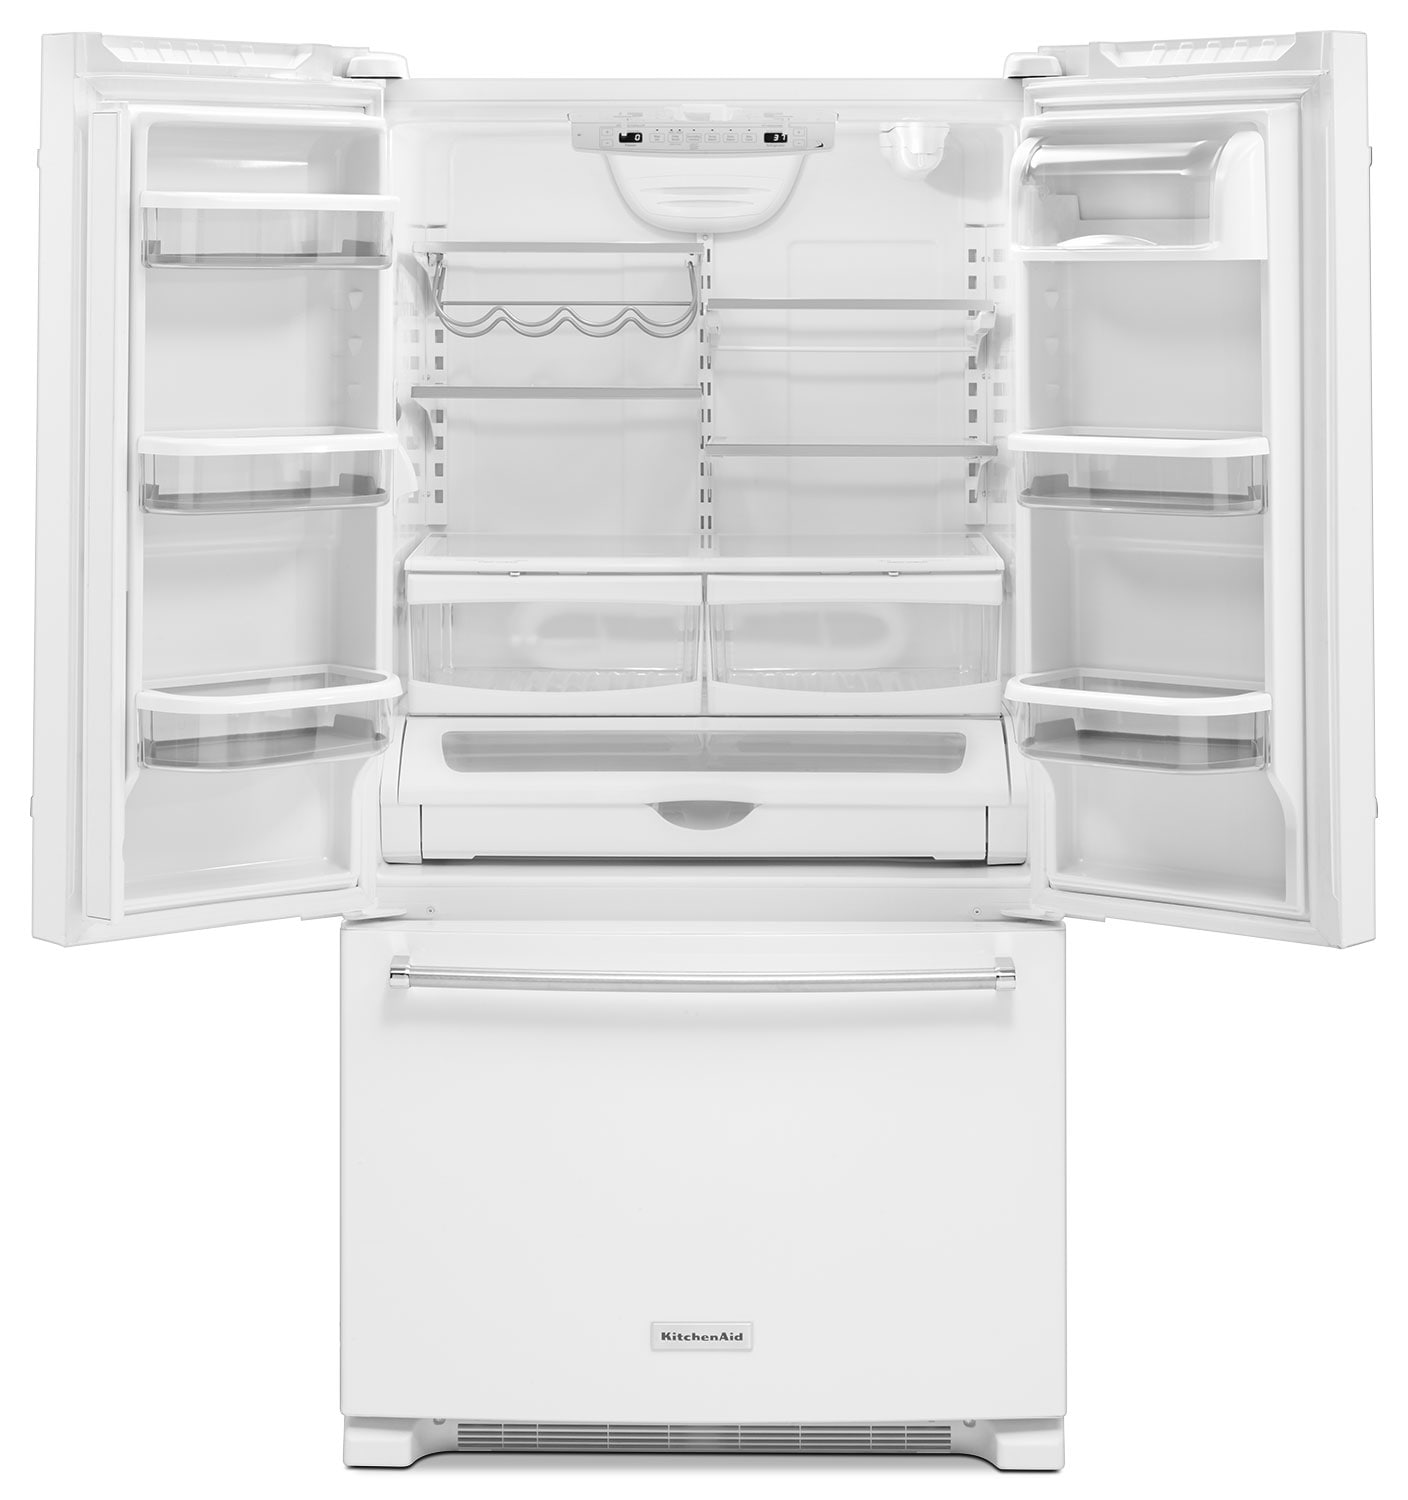 Kitchenaid White French Door Refrigerator 25 Cu Ft